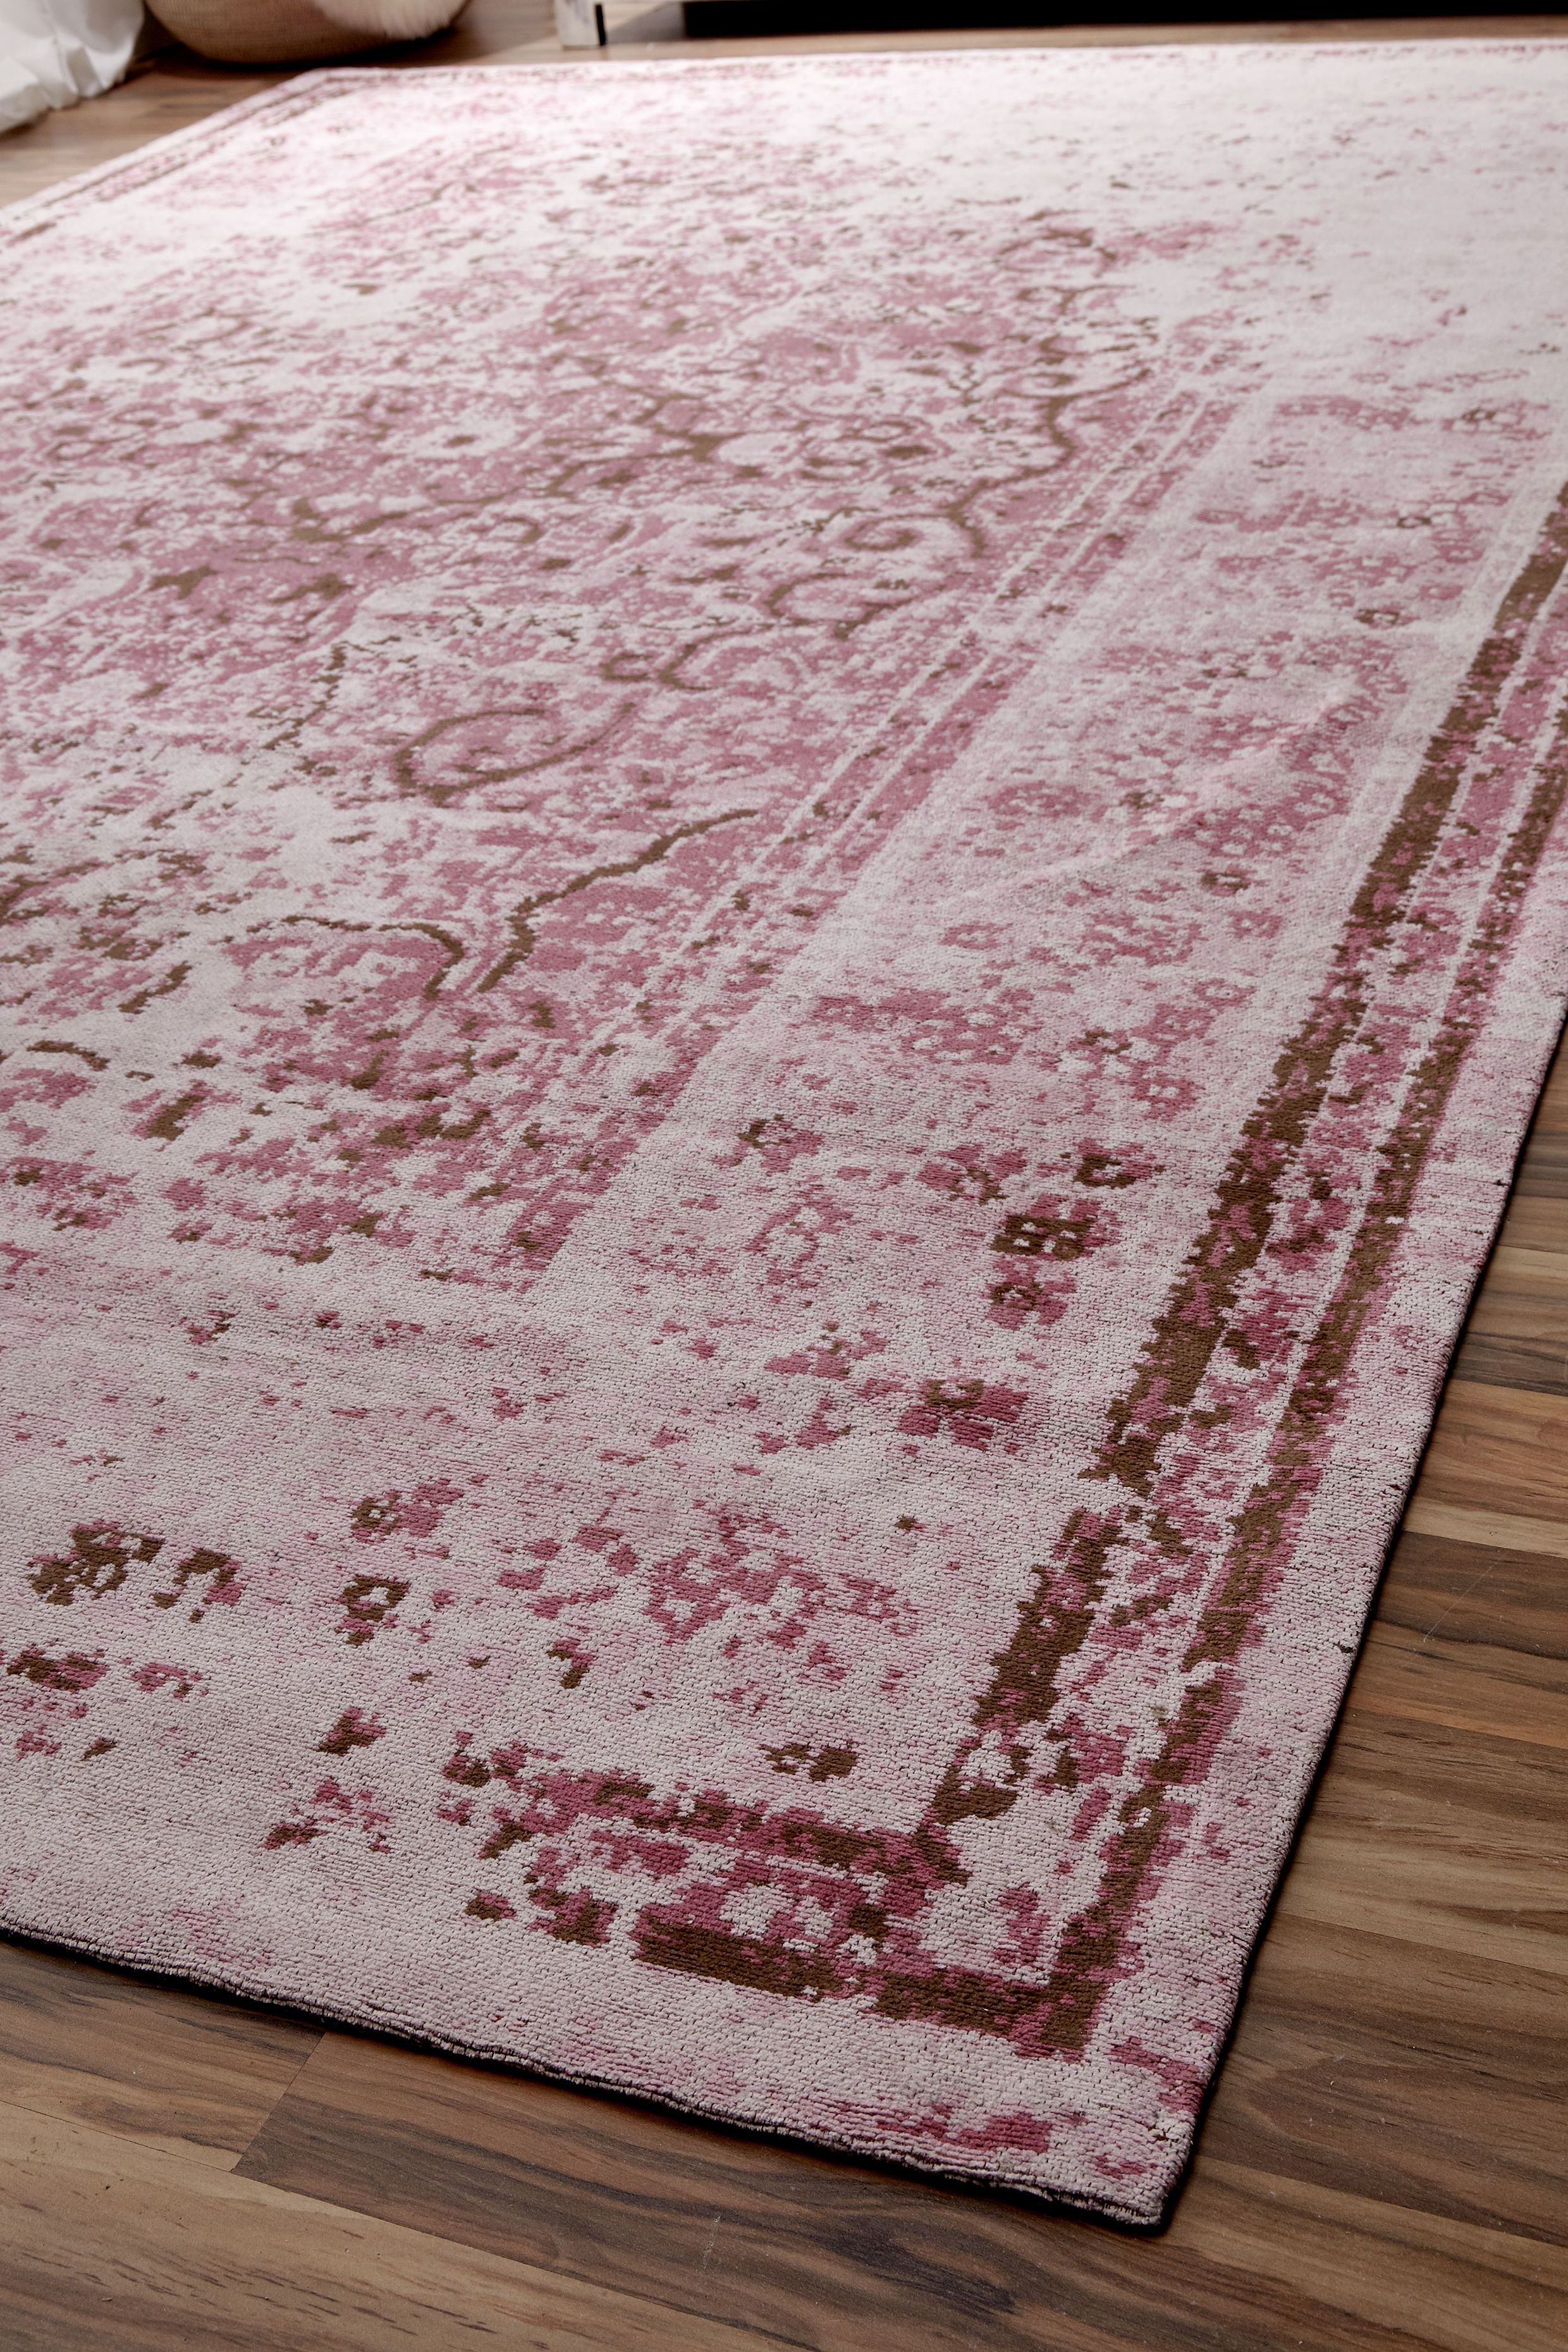 Teppich Relaxx Kunstfaser Altrosa 200 X 290 In 2020 Antique Pink Creative Garden Decor Carpet